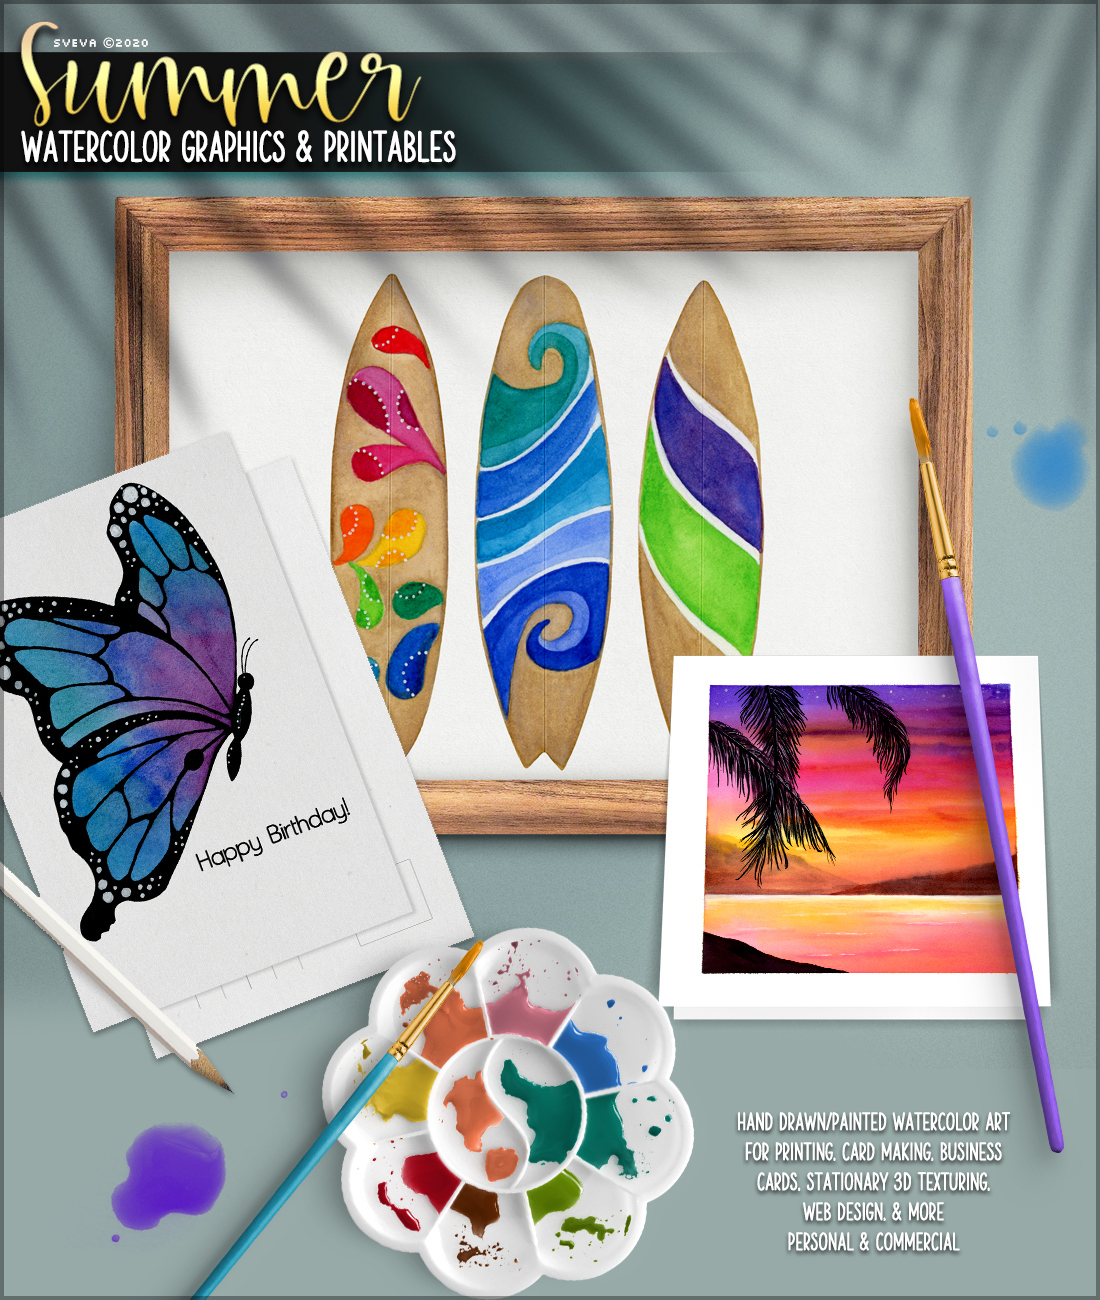 Summer Watercolor Graphics and Printables